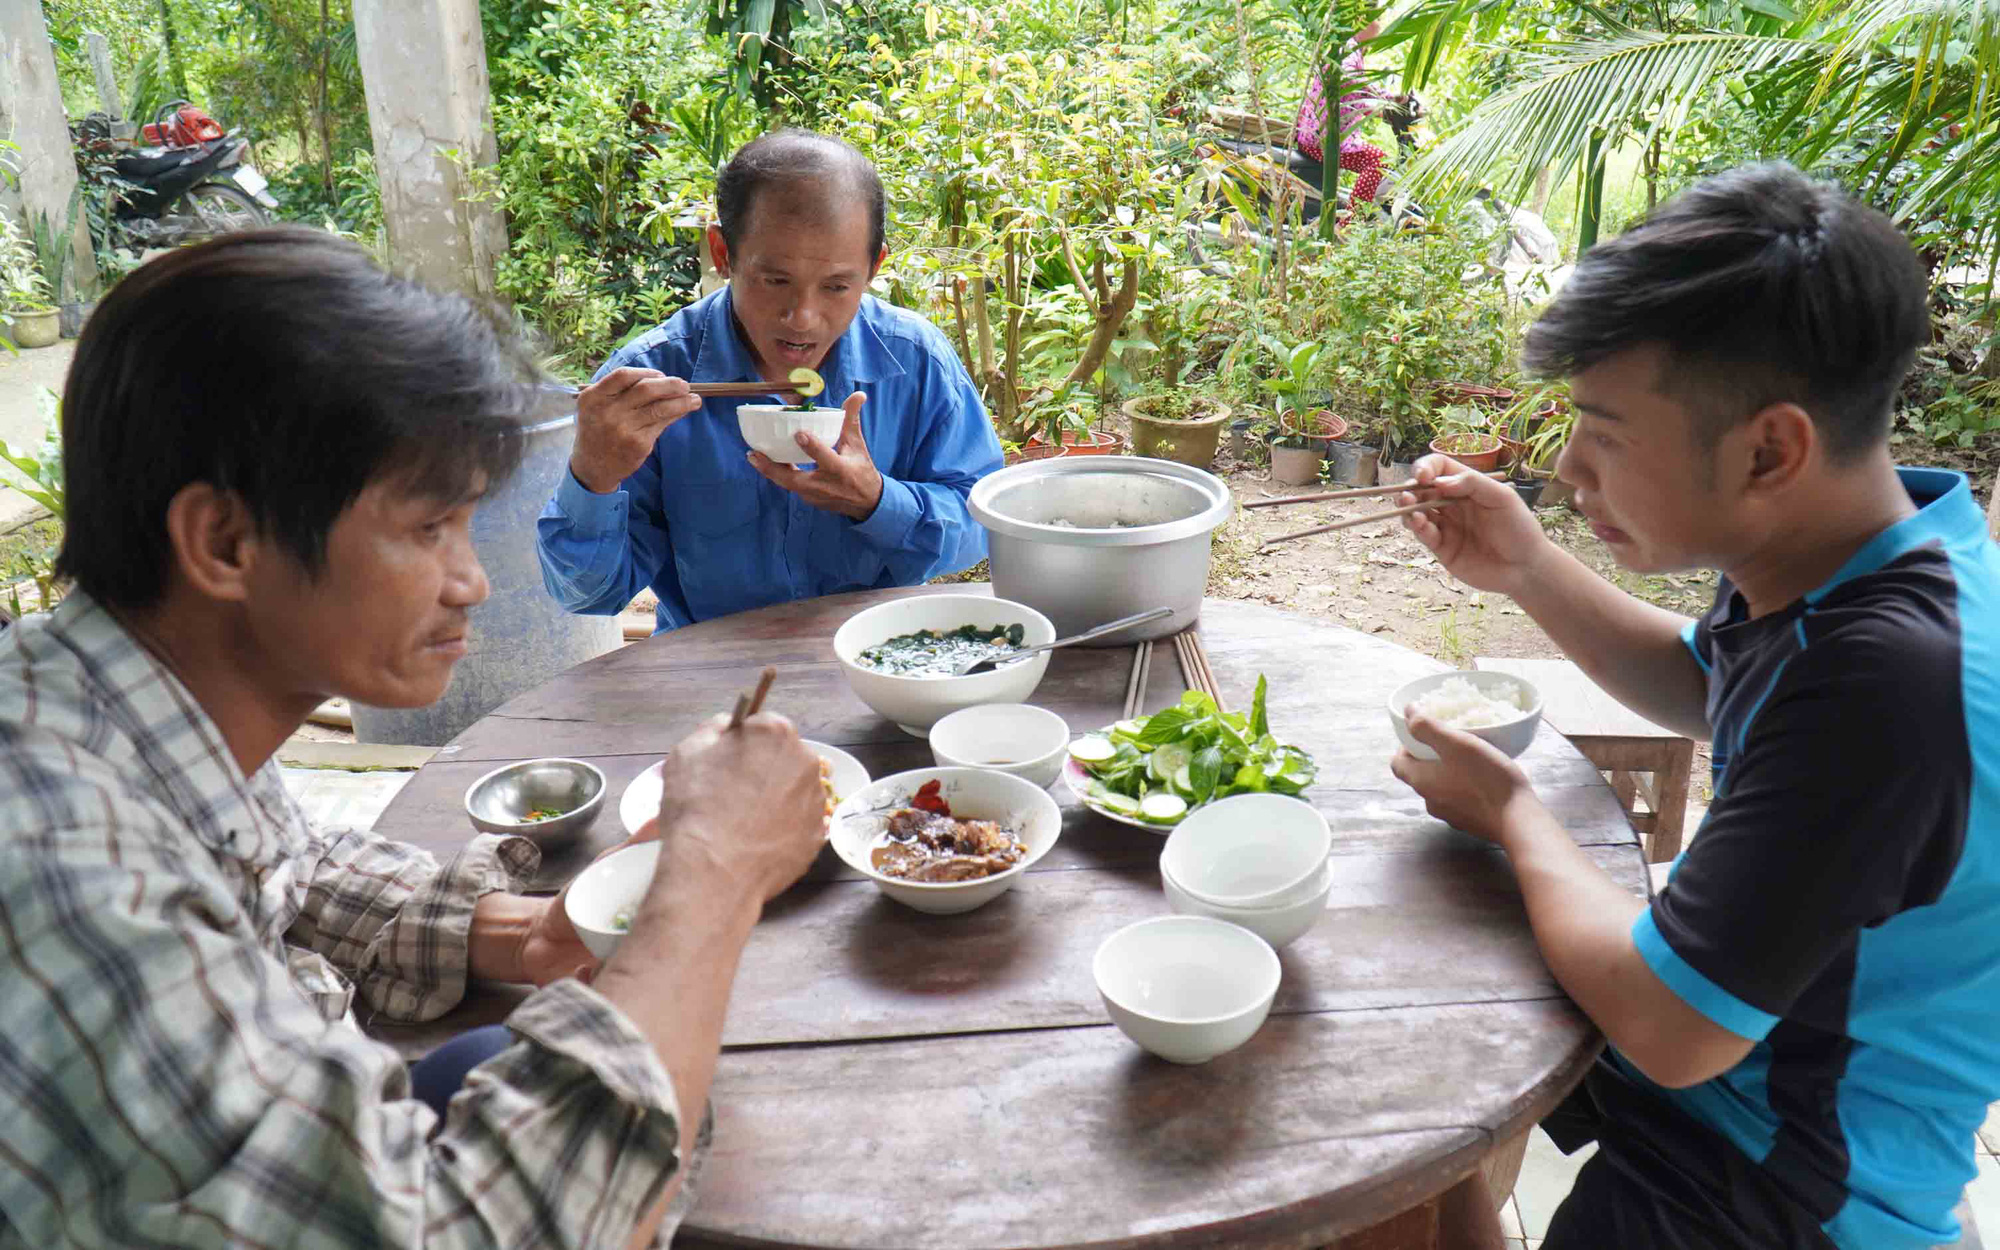 Pham Thanh Tung (C) is picture during a meal with his teammates. Photo: Mau Truong / Tuoi Tre